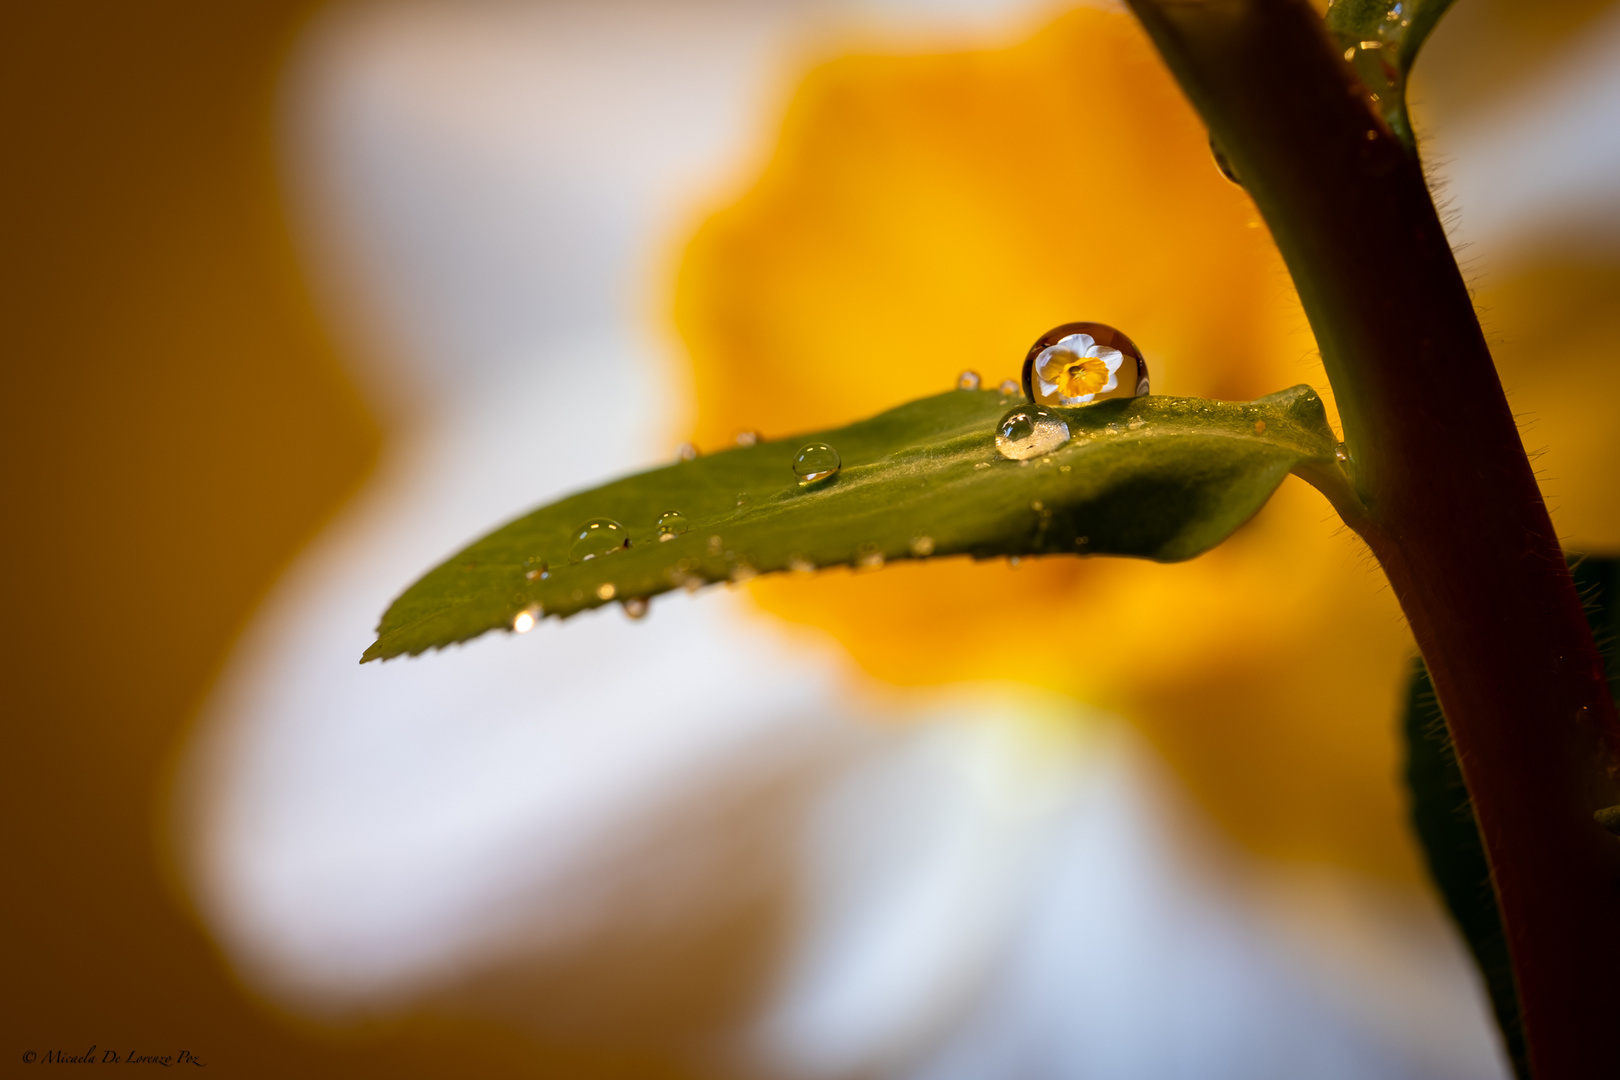 Daffodil in a Drop, experimenting